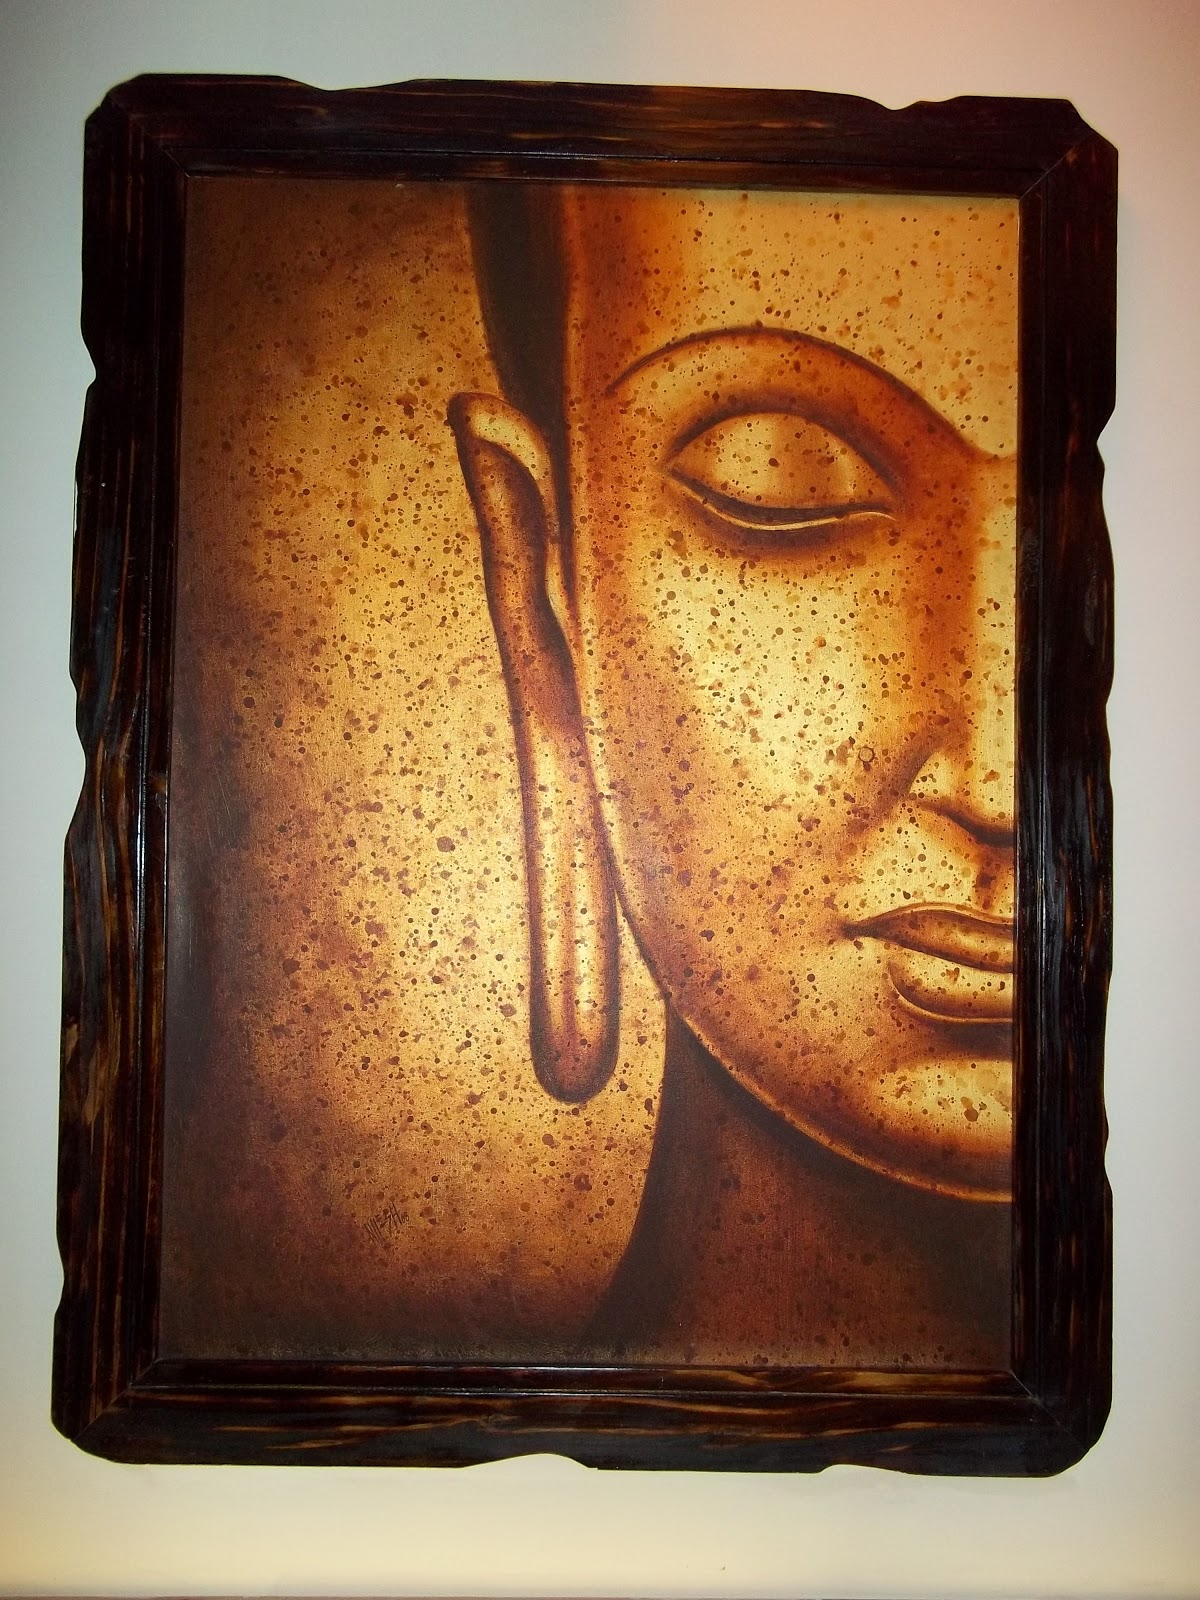 Creating Artistically: Buddhist inspired home decor